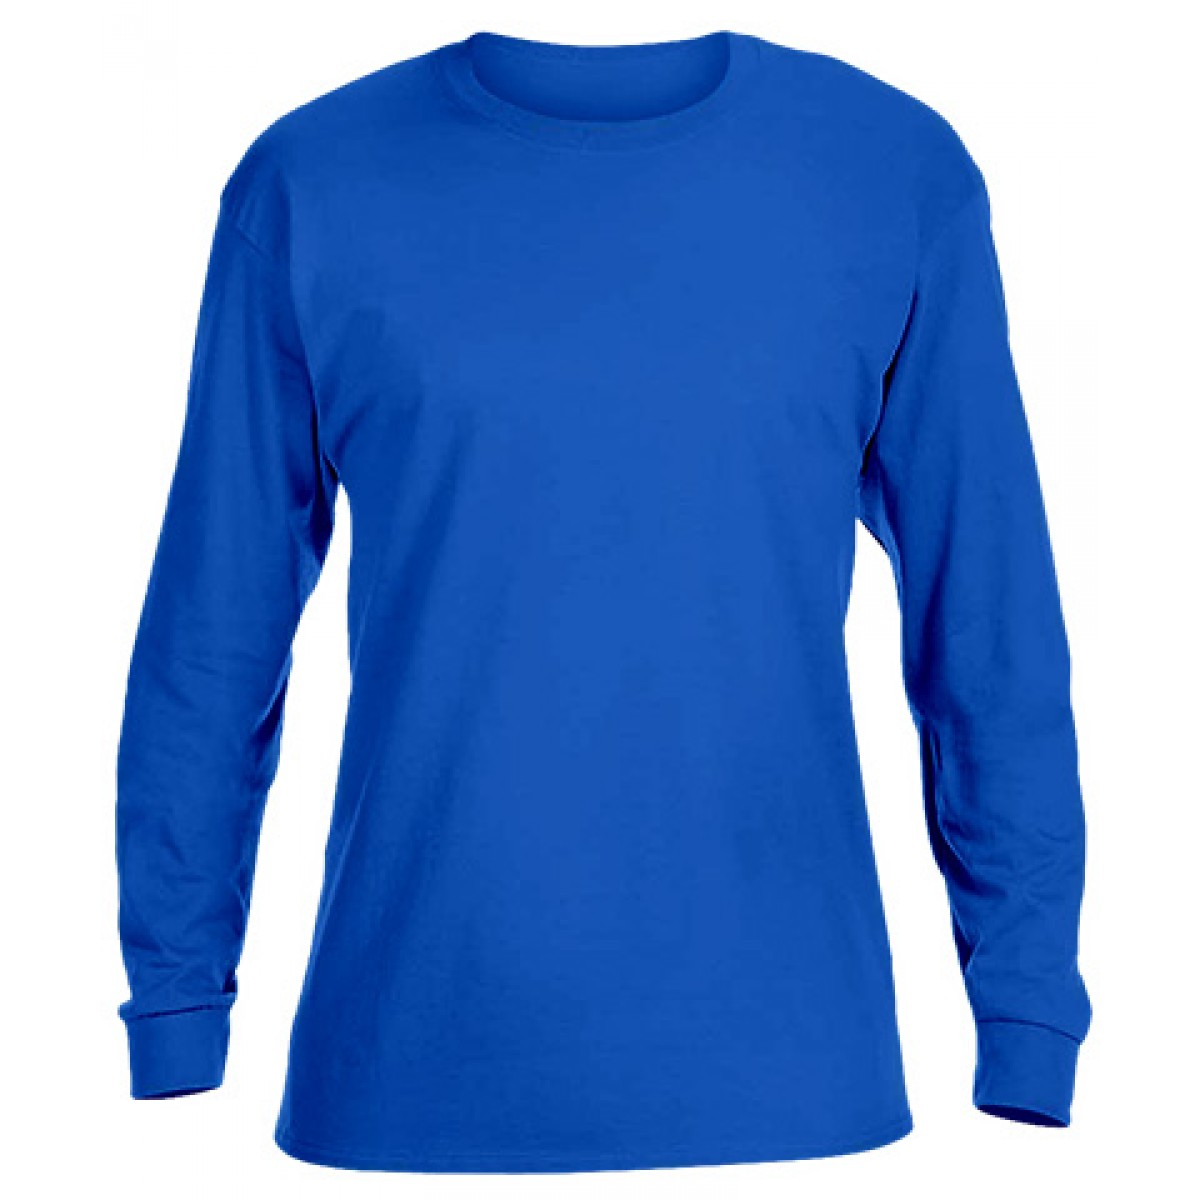 Basic Long Sleeve Crew Neck -Royal Blue-YL